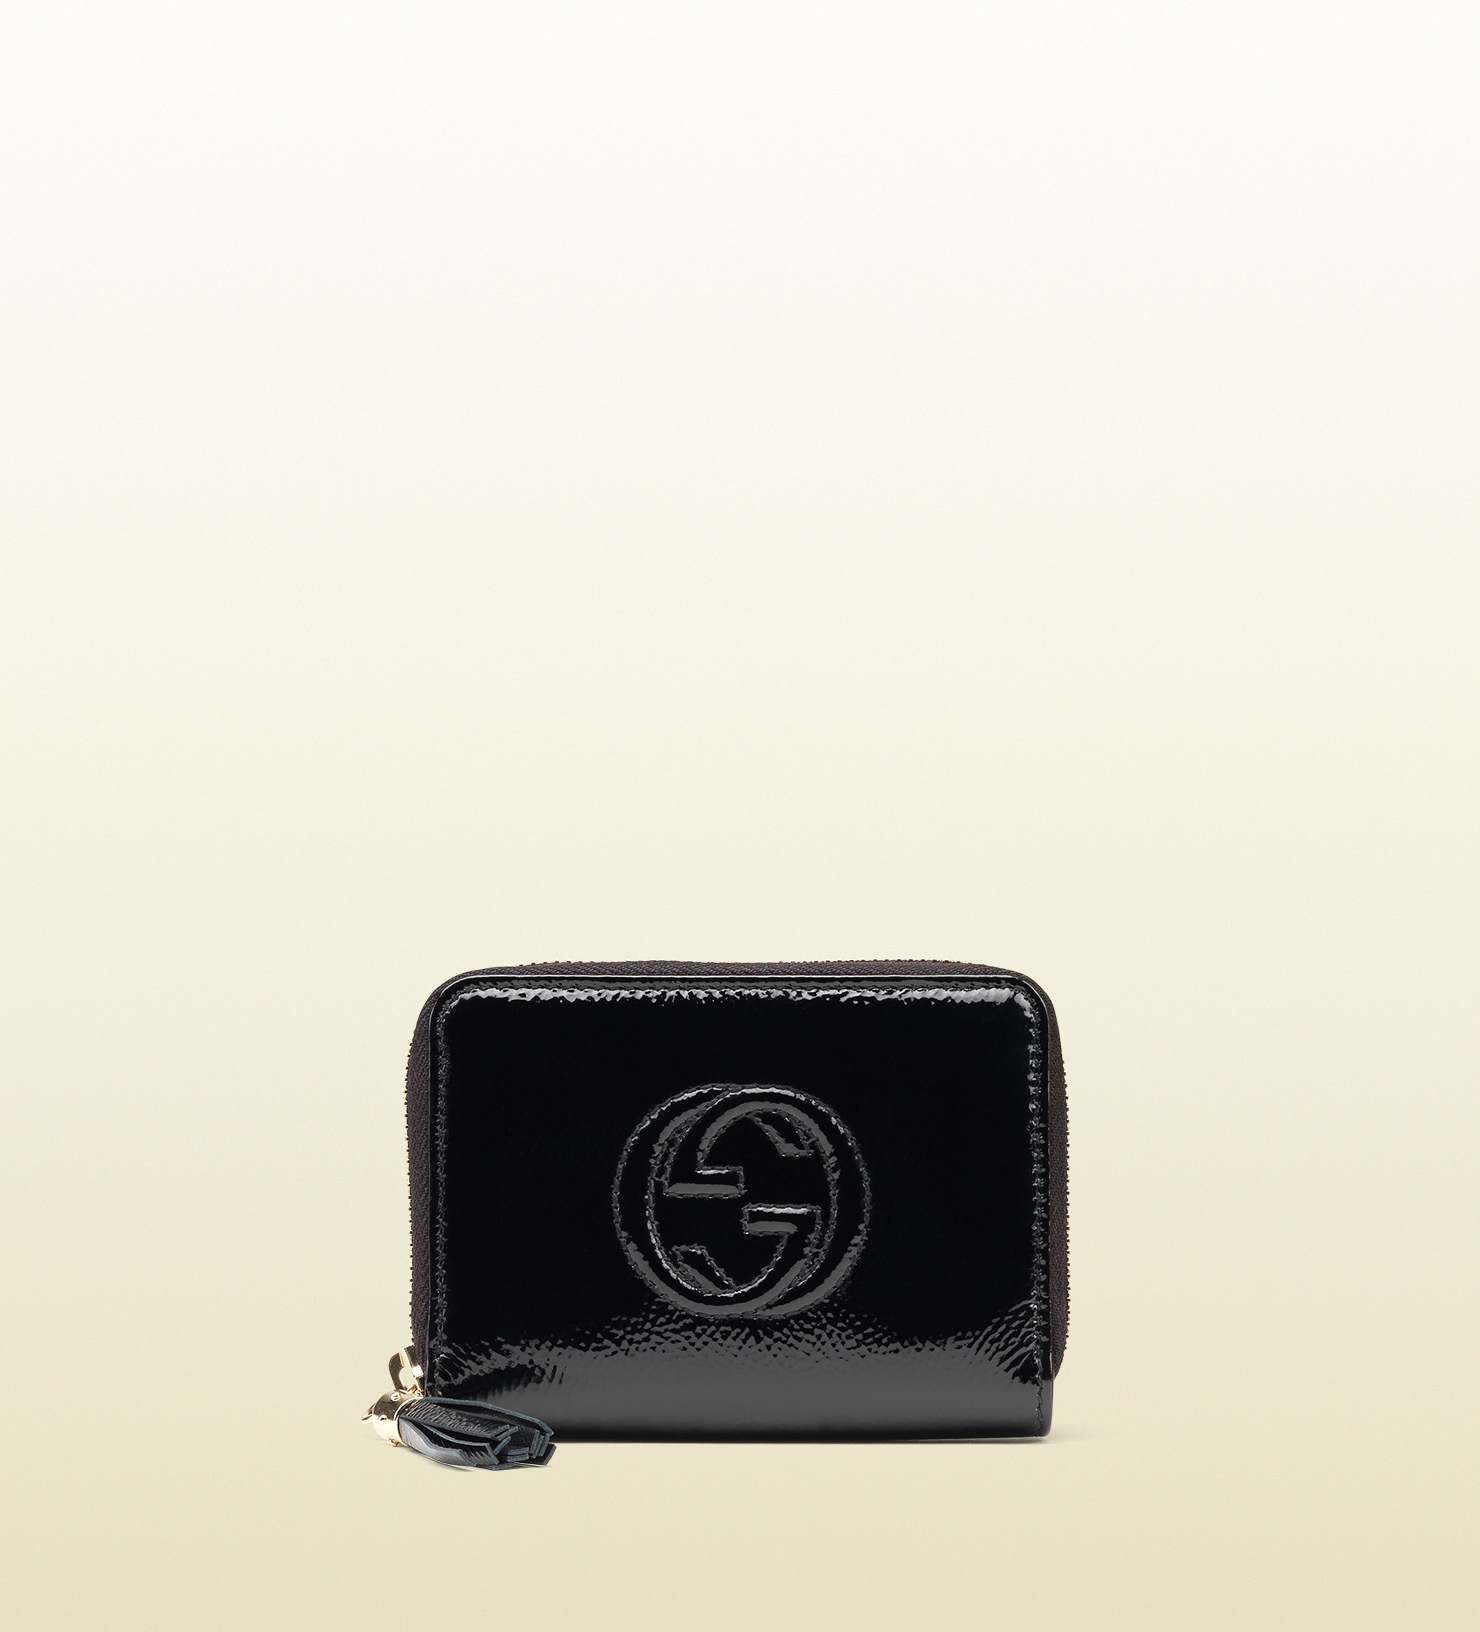 4525245979ae Gucci Soho Soft Patent Leather Zip Around Wallet in Black - Lyst